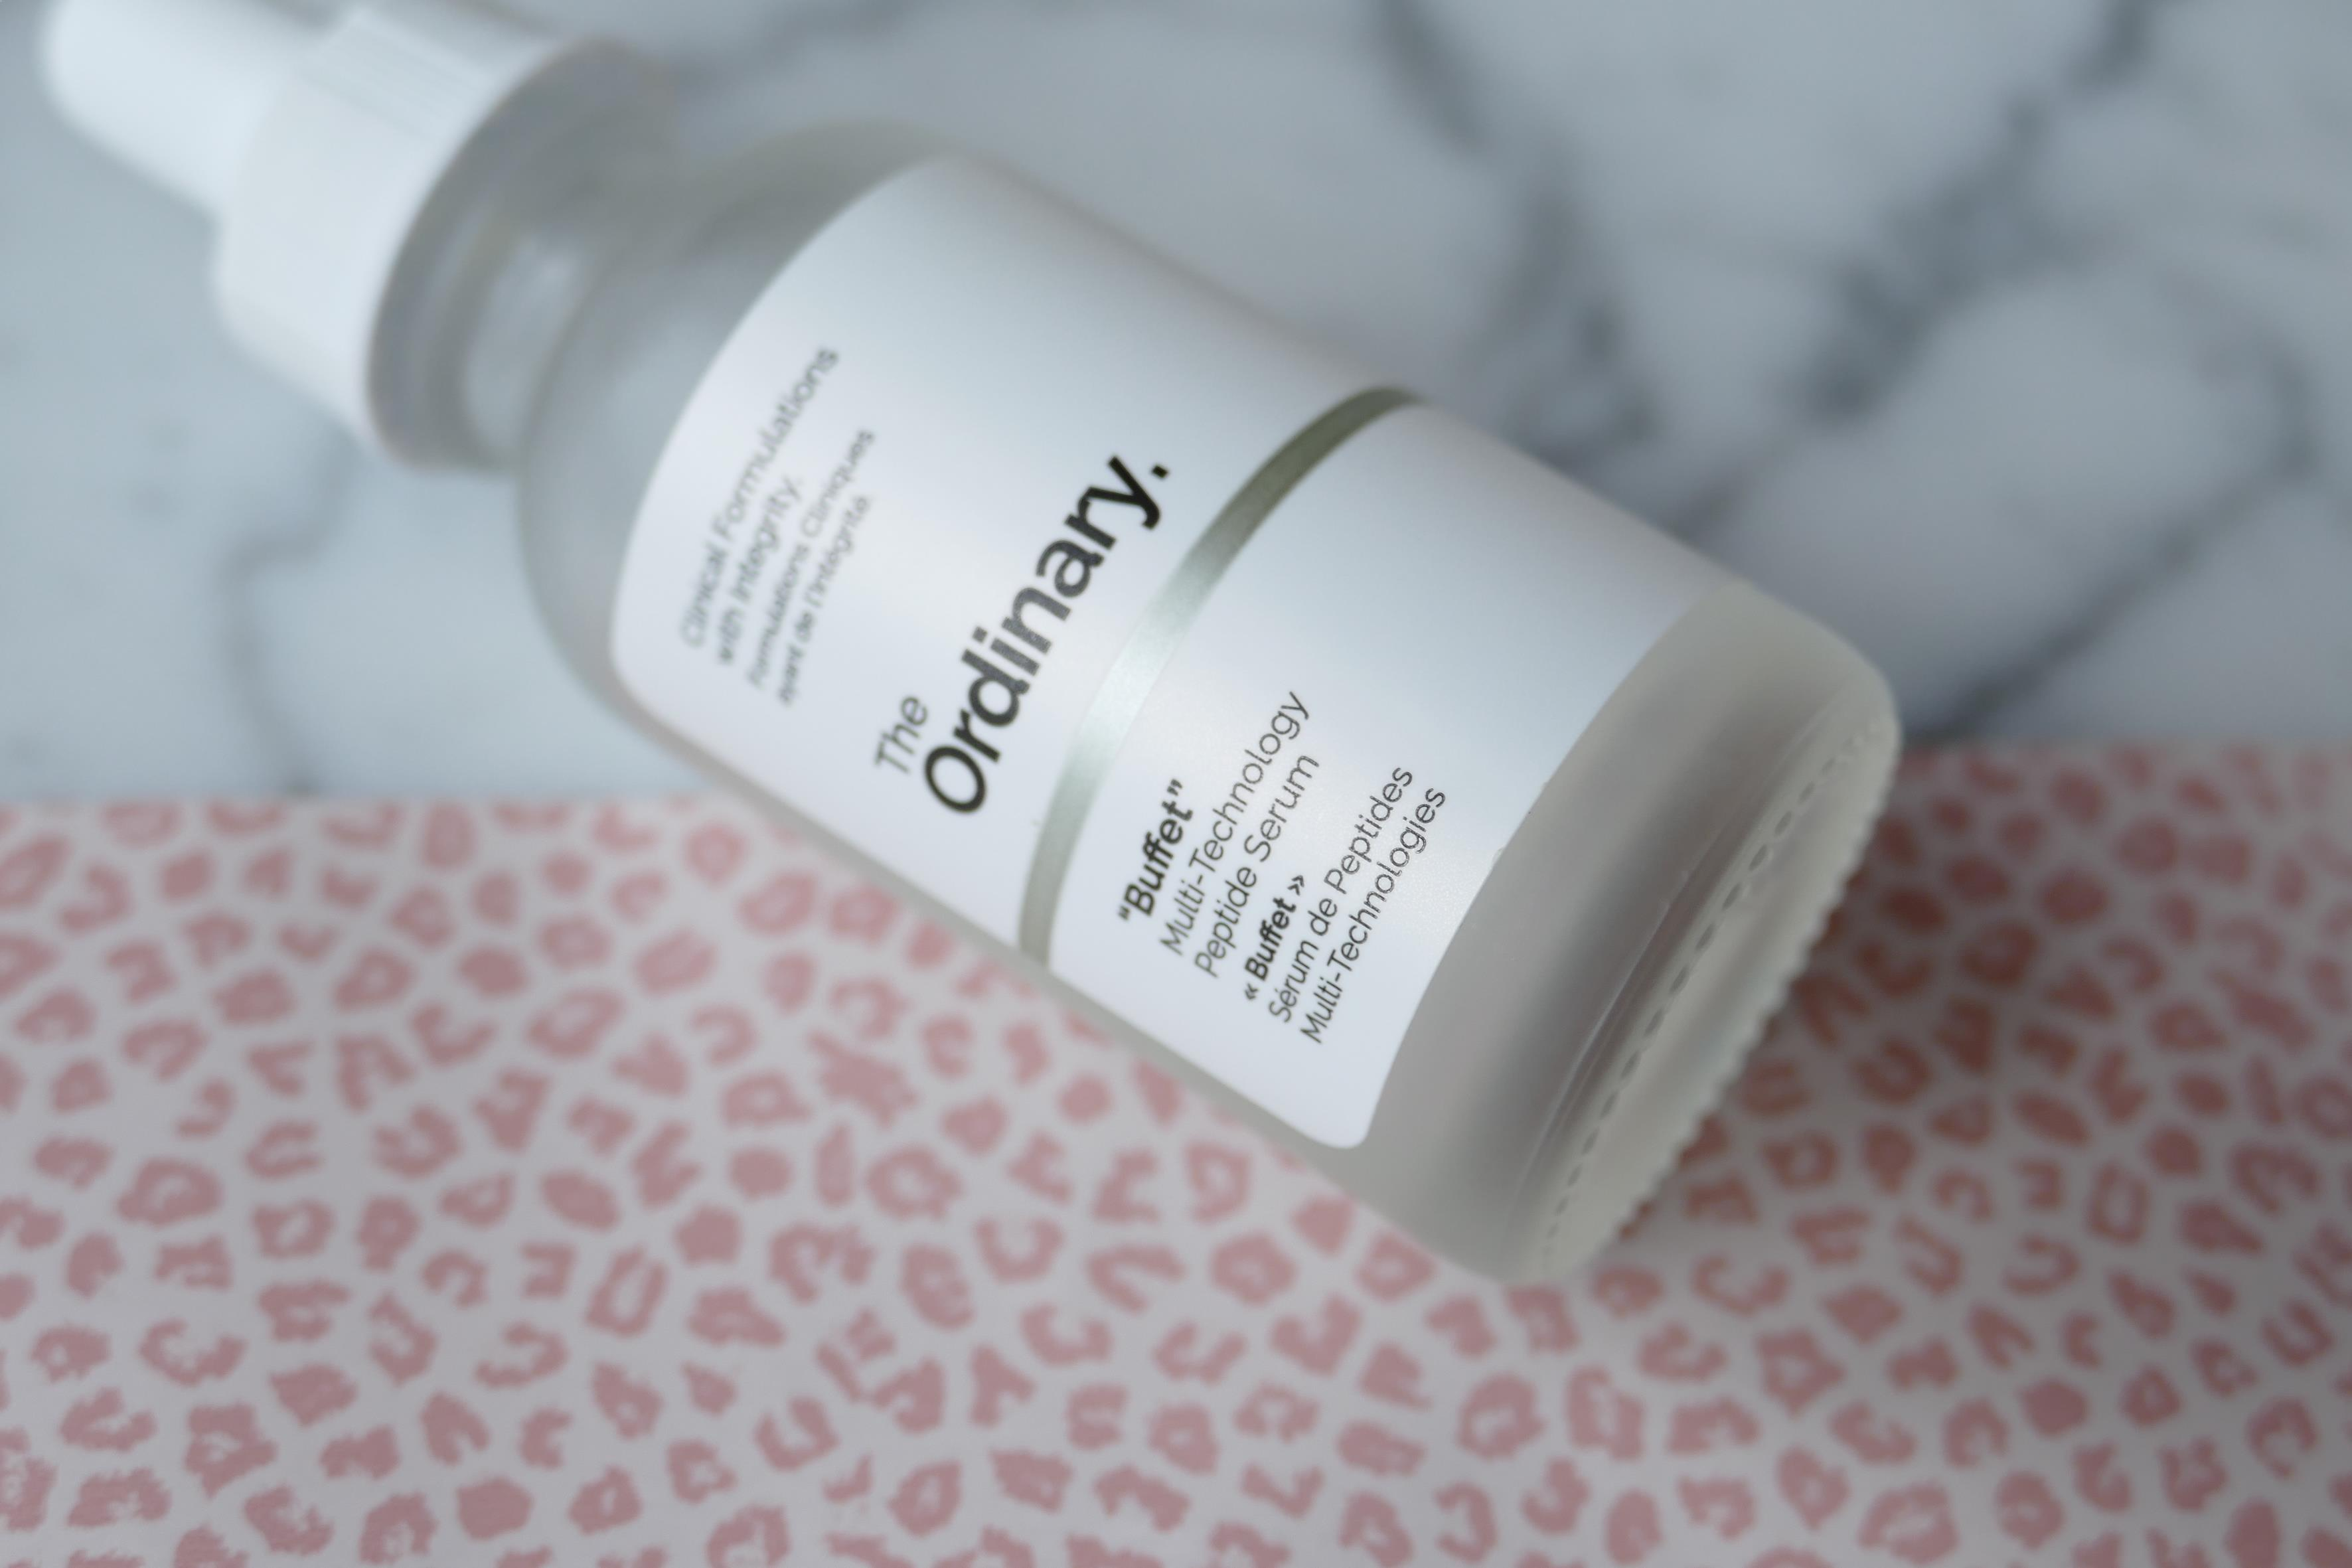 Again The Ordinary Fails To Be Extraordinary The Buffet And Niacinamide 10 Zinc 1 Twindly Beauty Blog